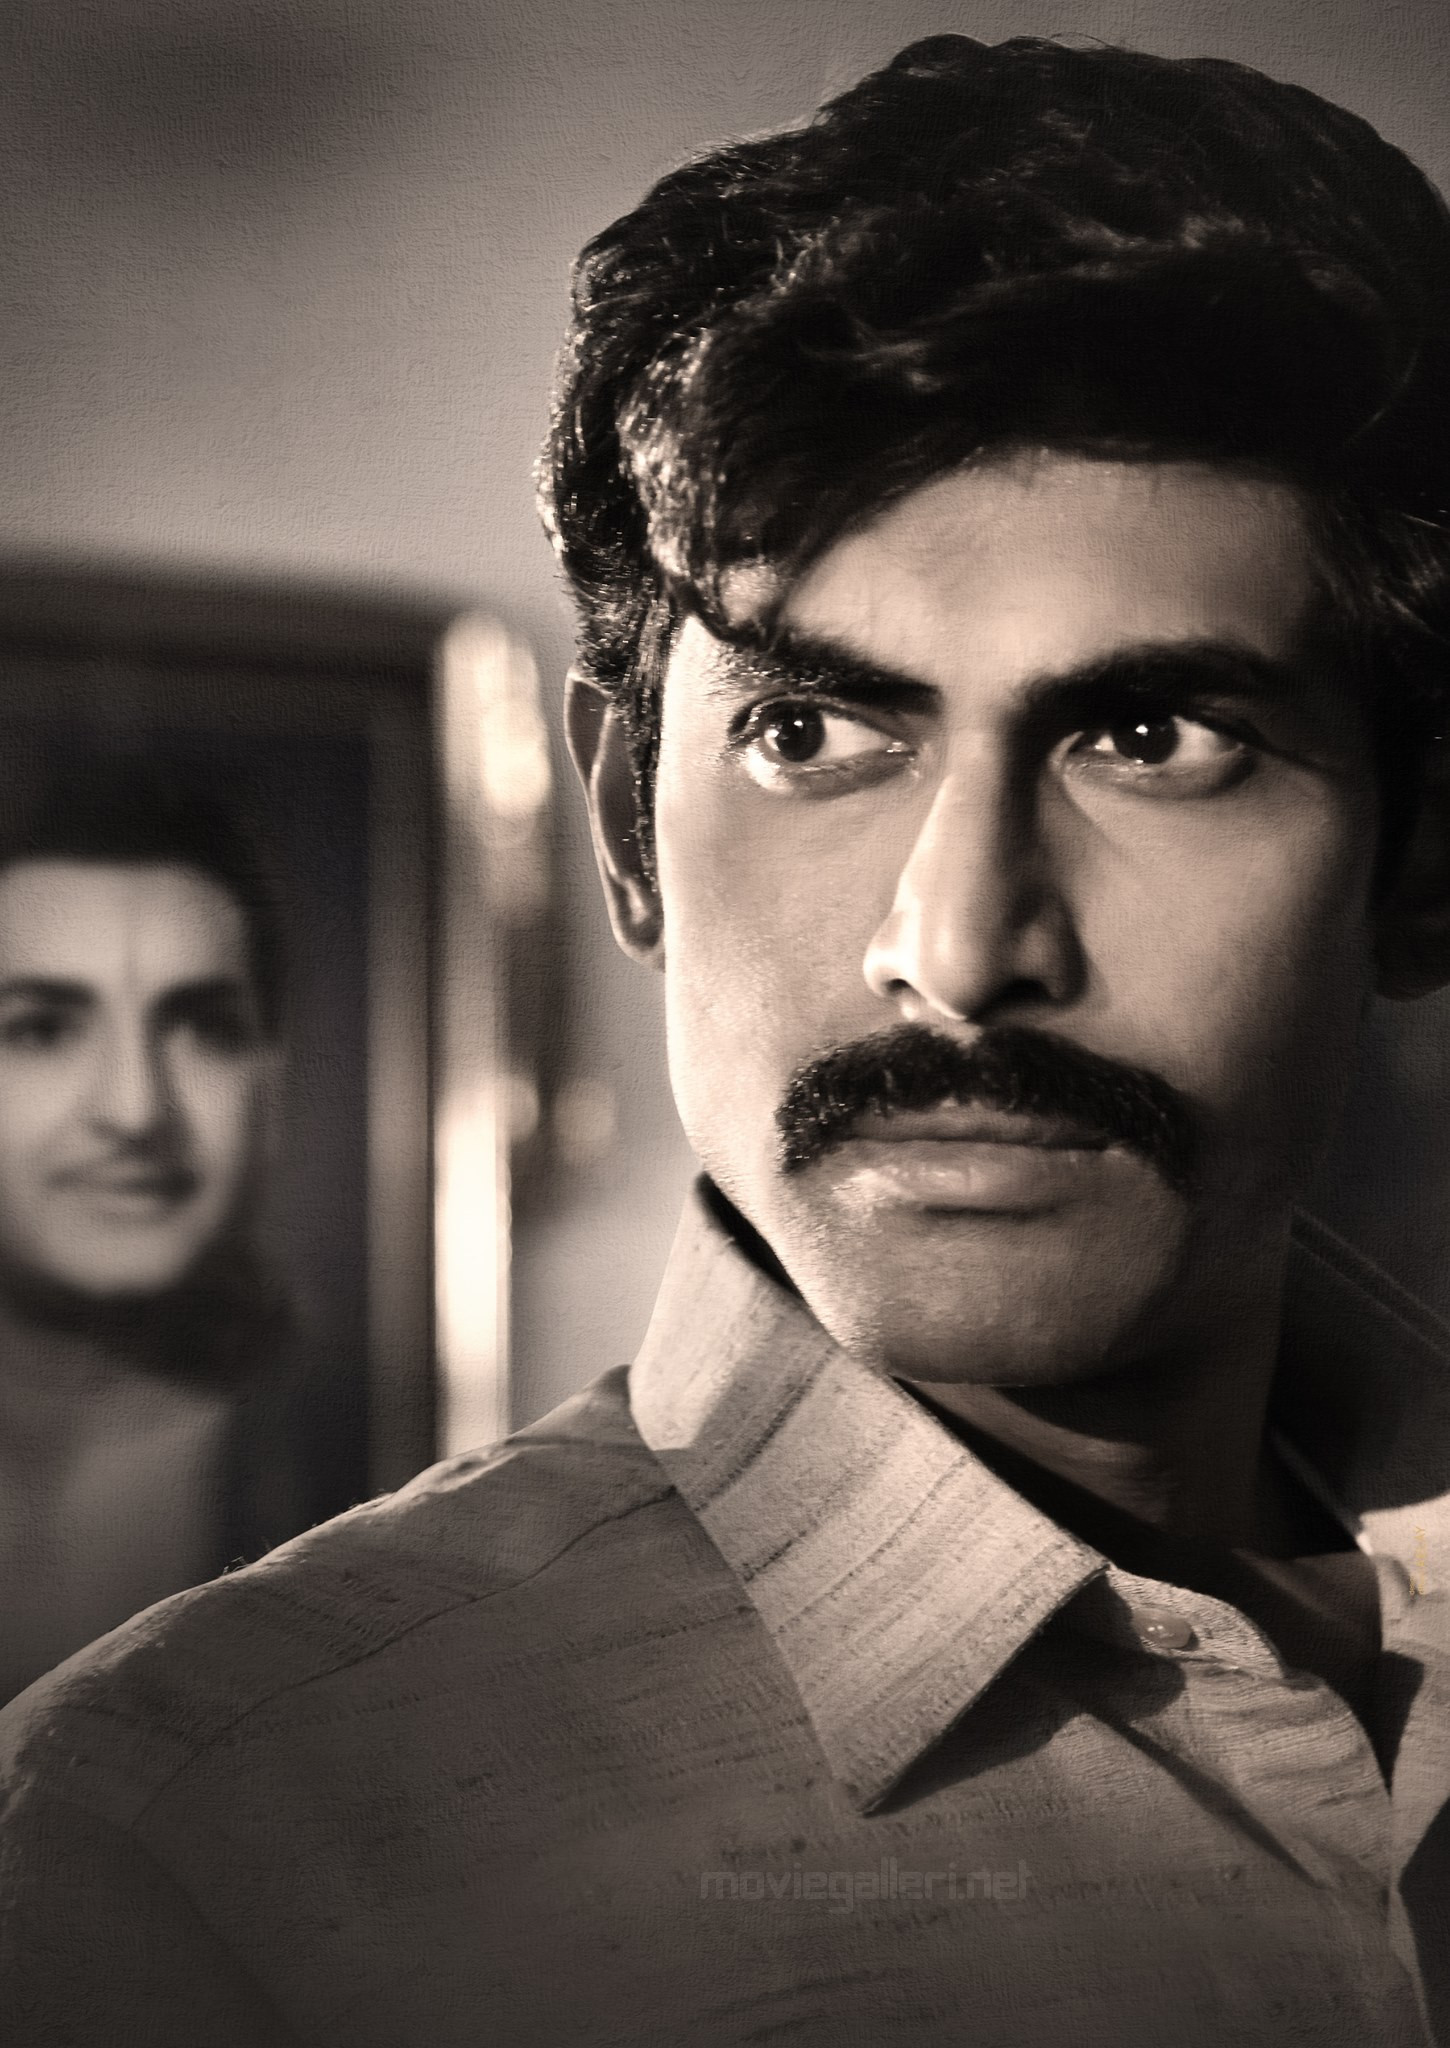 Actor Rana Daggubati as Nara Chandrababu Naidu from NTR Biopic Film